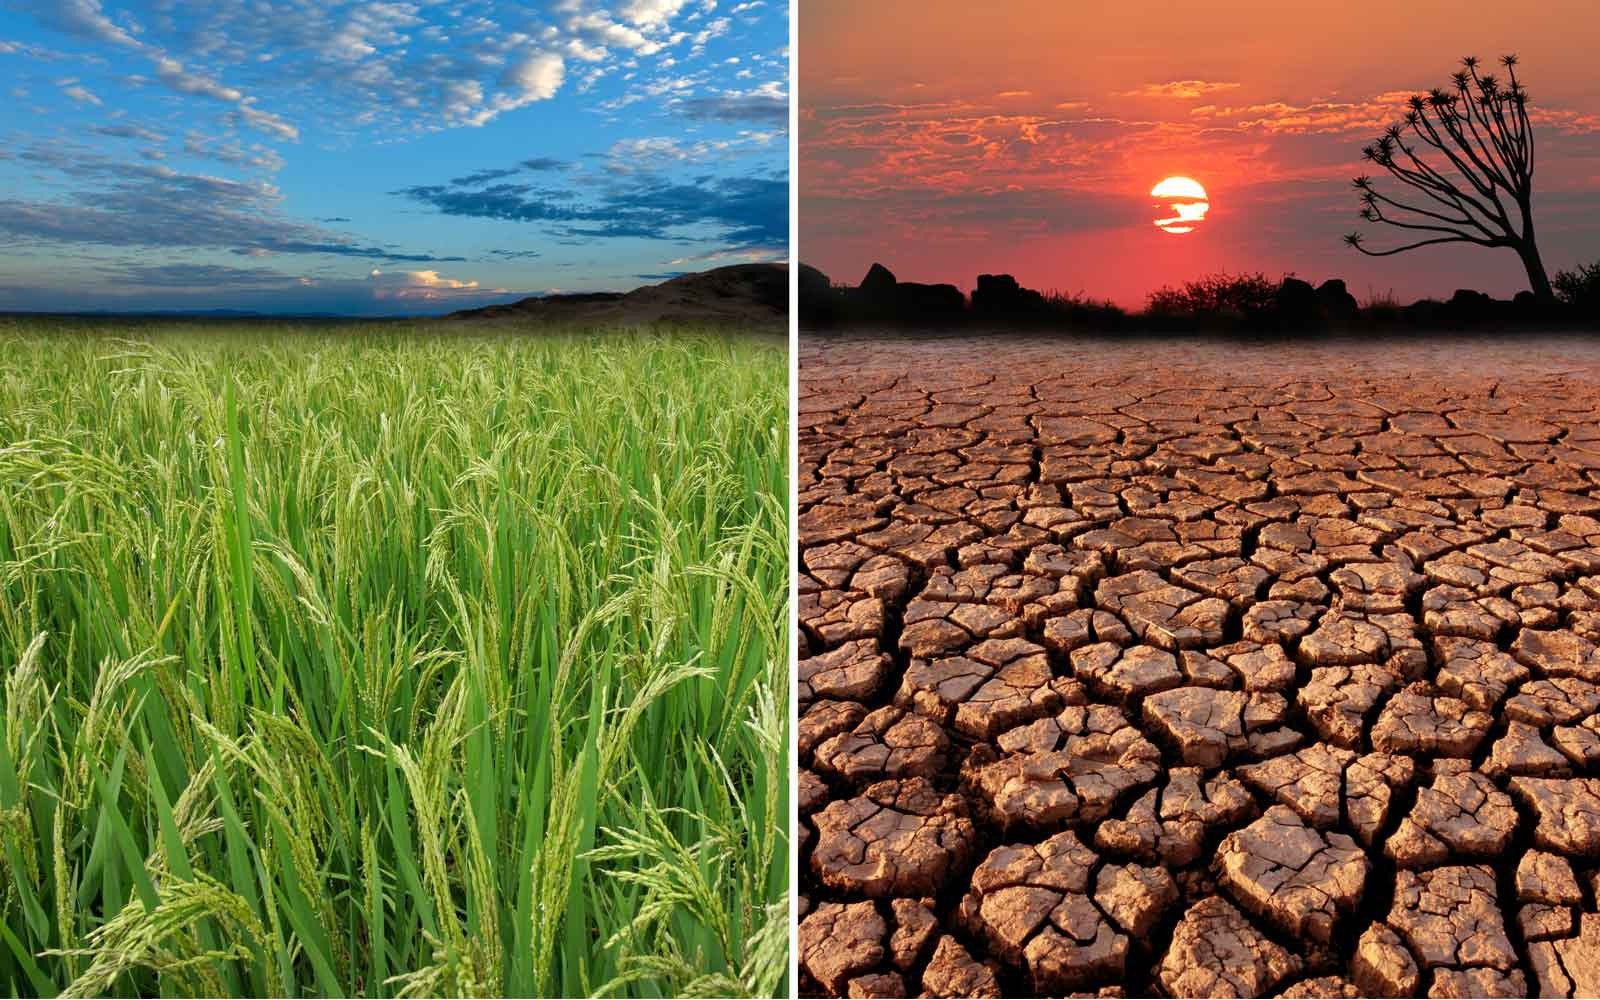 Global Food Shortages? Learn More this World Day to Combat Desertification (June 17)